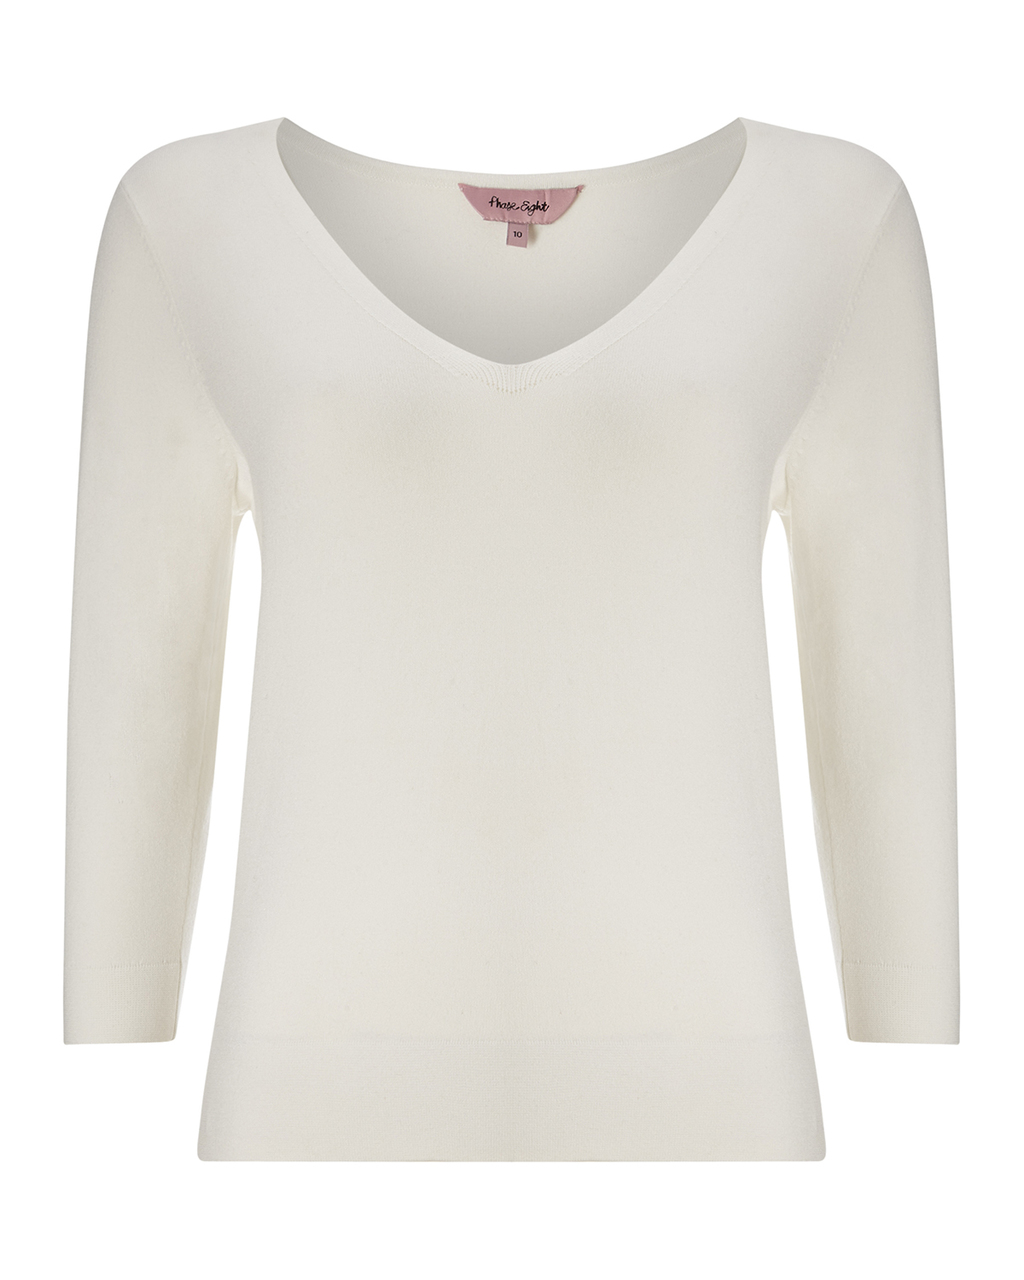 Lizette Stitch Knit - neckline: v-neck; pattern: plain; style: standard; predominant colour: ivory/cream; occasions: casual, creative work; length: standard; fibres: cotton - mix; fit: standard fit; sleeve length: 3/4 length; sleeve style: standard; texture group: knits/crochet; pattern type: knitted - fine stitch; season: a/w 2015; wardrobe: basic